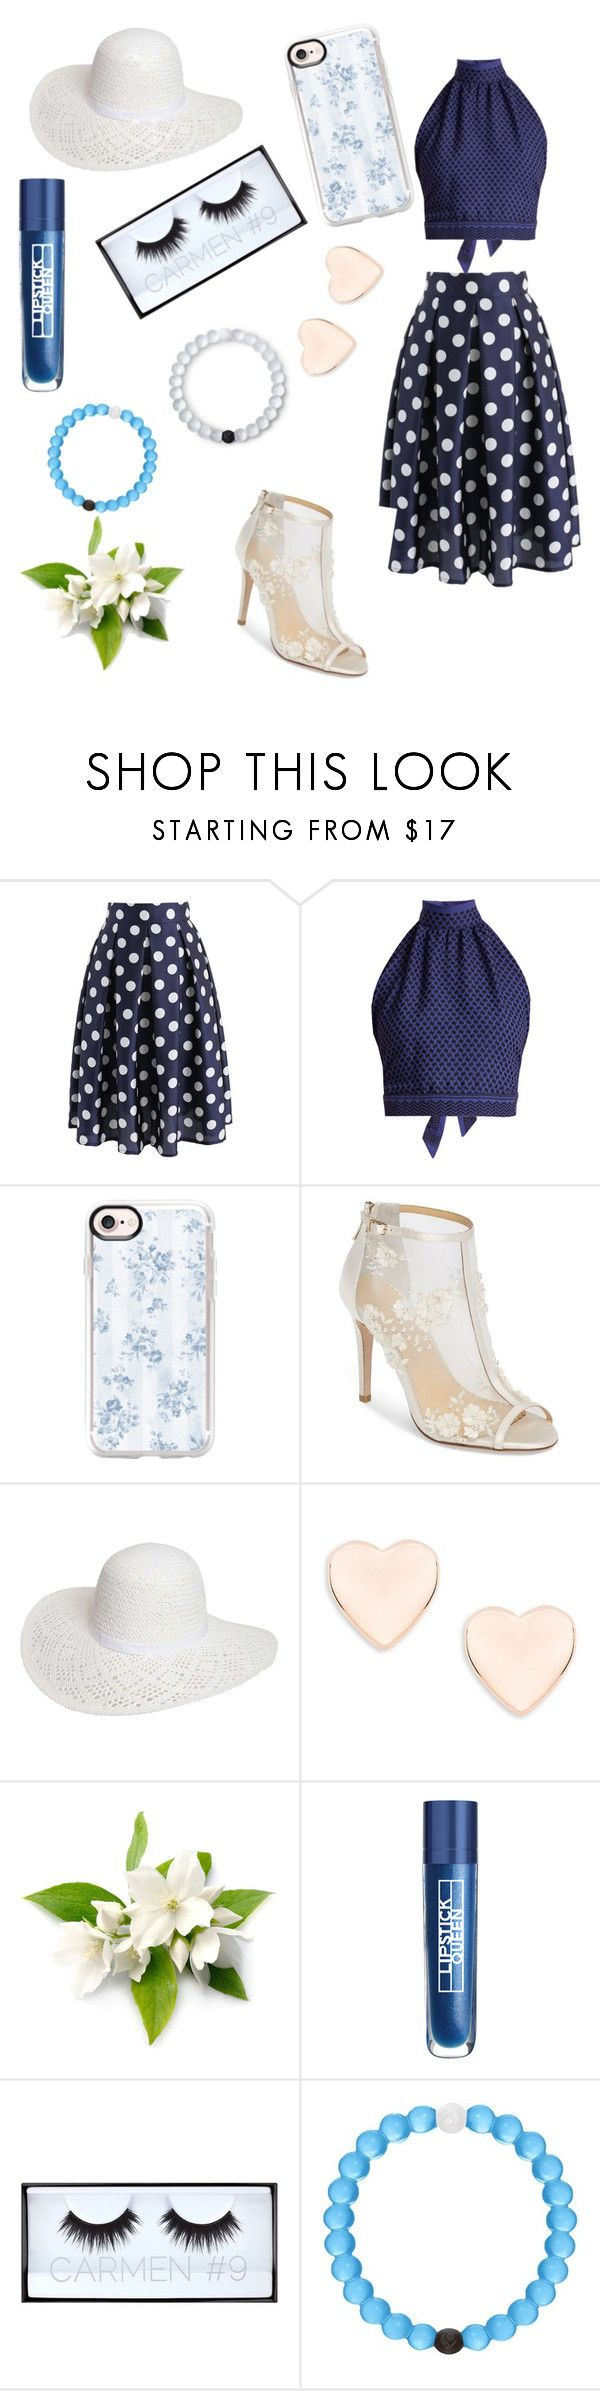 """""""Tangled Up In Blue"""" by lolurnotalexturner ❤ liked on Polyvore featuring Chicwish, CECILIE Copenhagen, Casetify, Bella Belle, Dorothy Perkins, Ted Baker, Lipstick Queen, Huda Beauty and Lokai"""